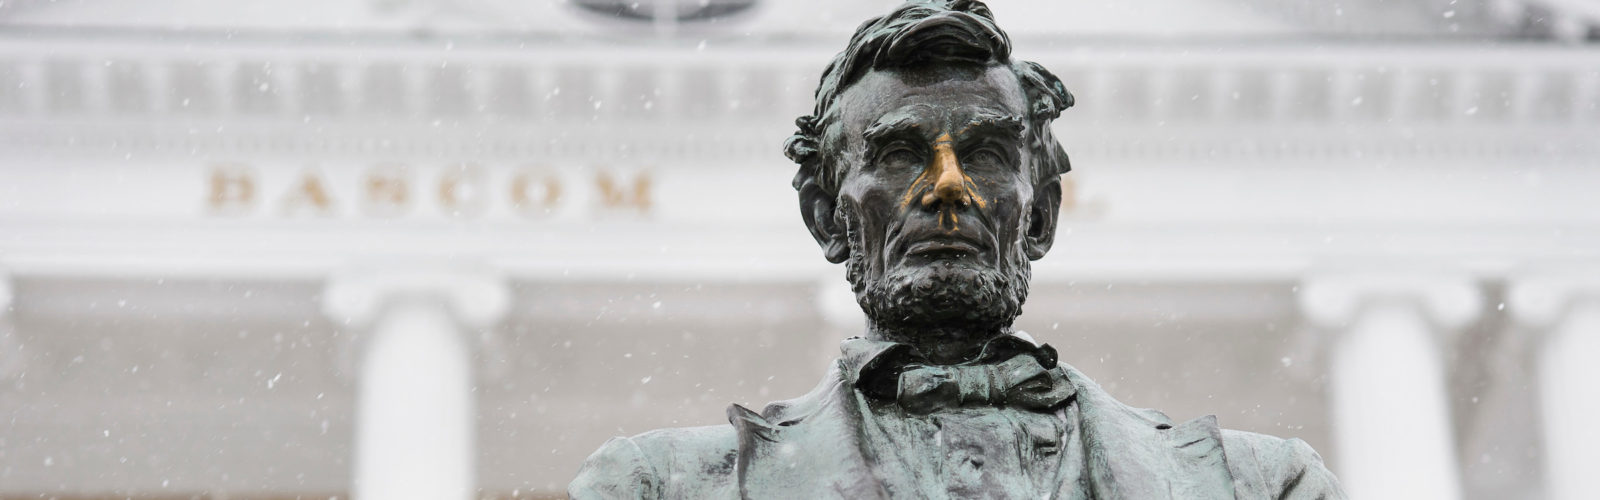 A light snow falls on the Abraham Lincoln statue in front of Bascom Hall